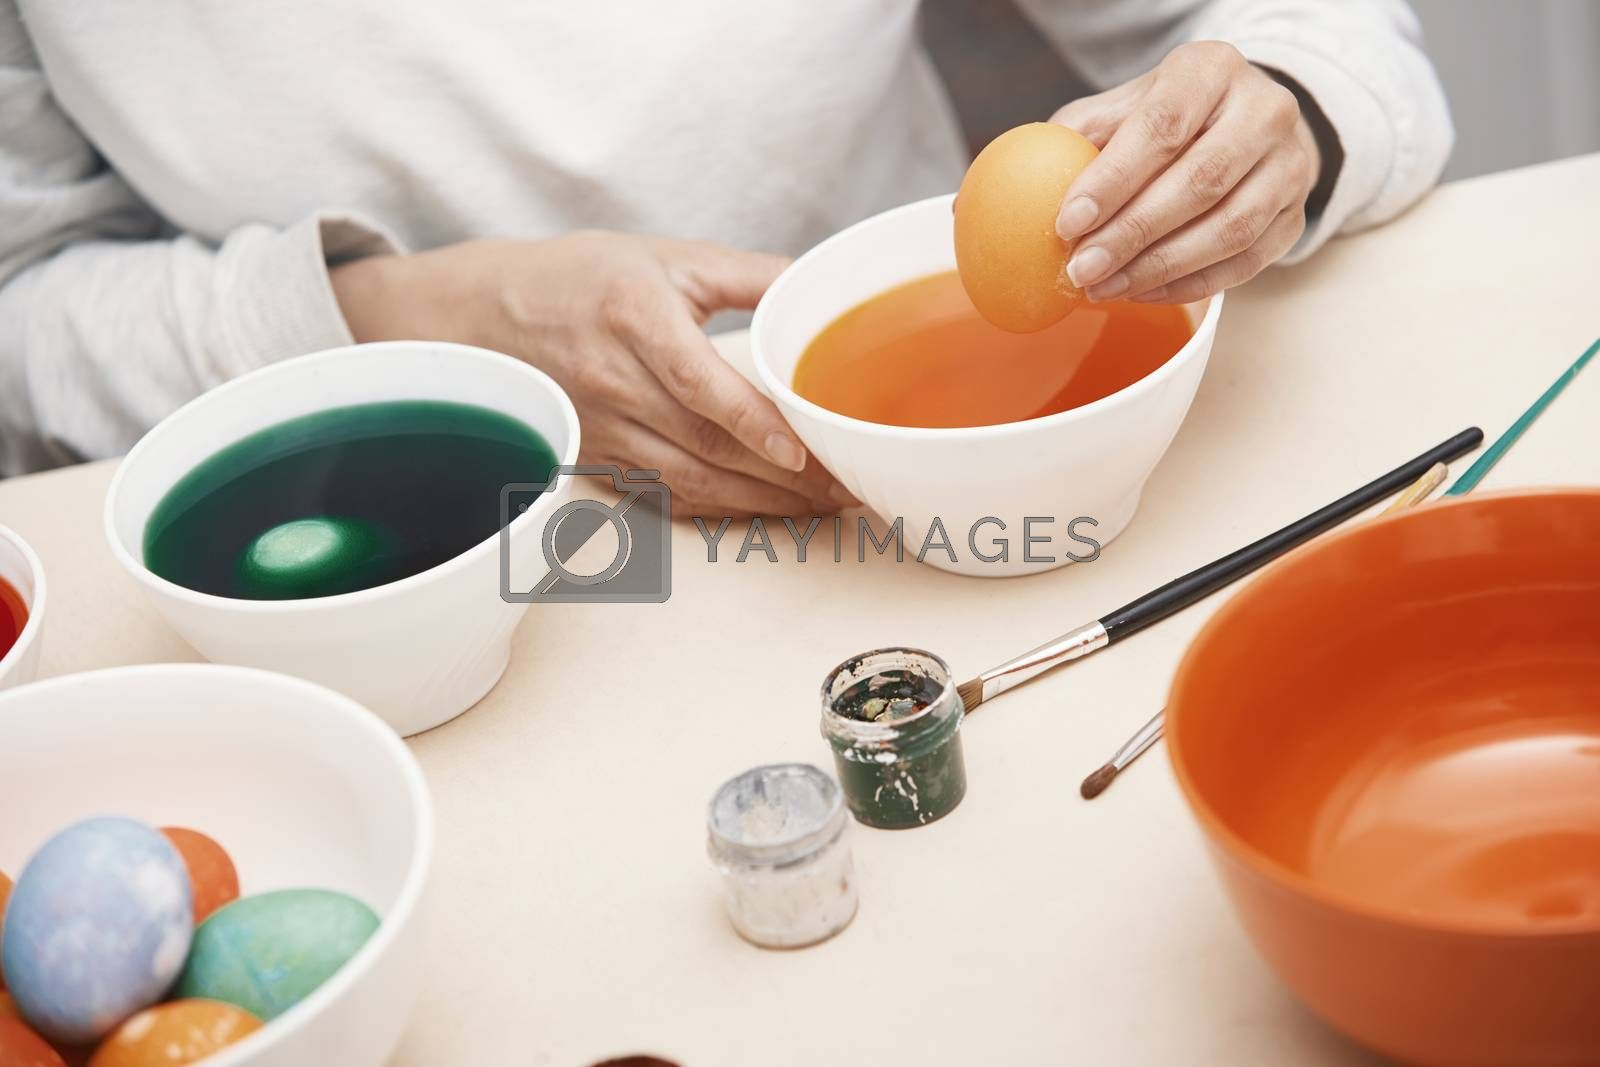 Woman preparing Easter eggs by Novic